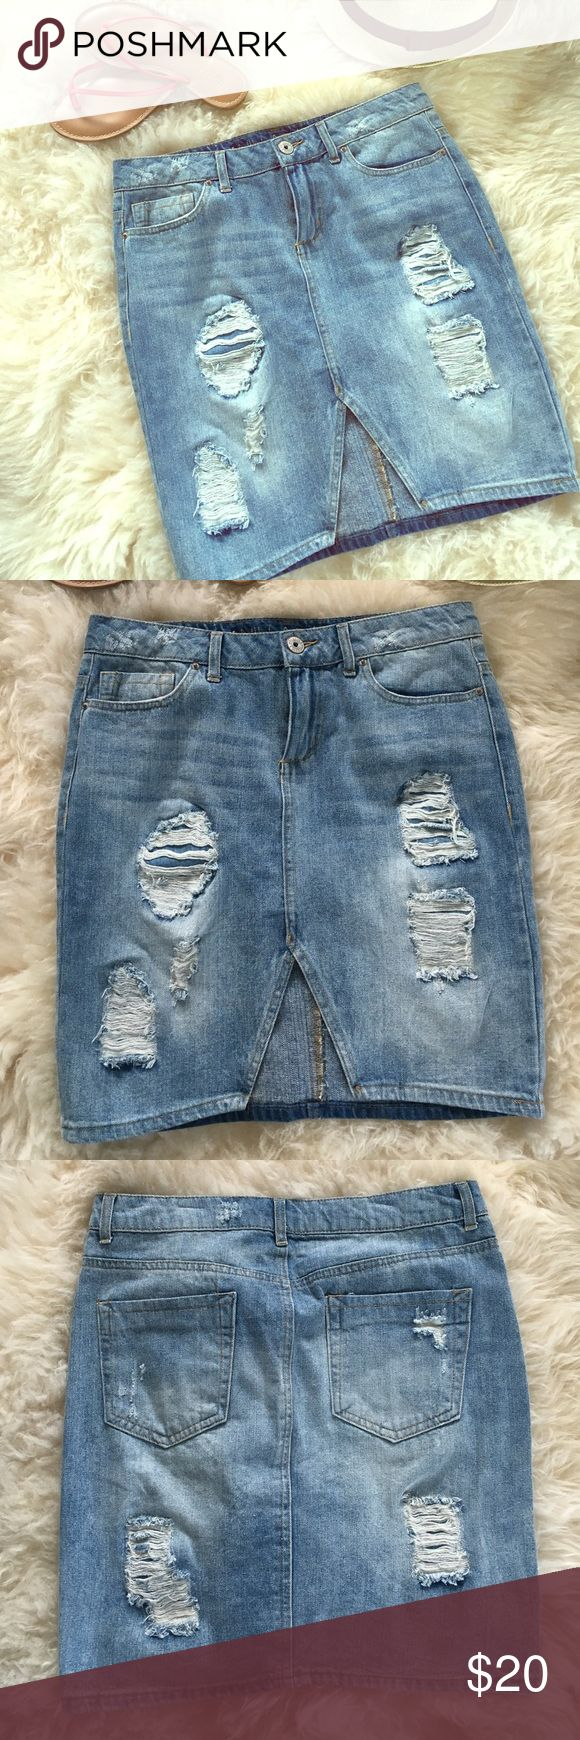 HOST PICK Distressed Jean Skirt This 'Vanilla Star' mid length form fitting jean skirt is the perfect summer and fall go to staple. NWOT (tag came off) never worn. Skirts Mini